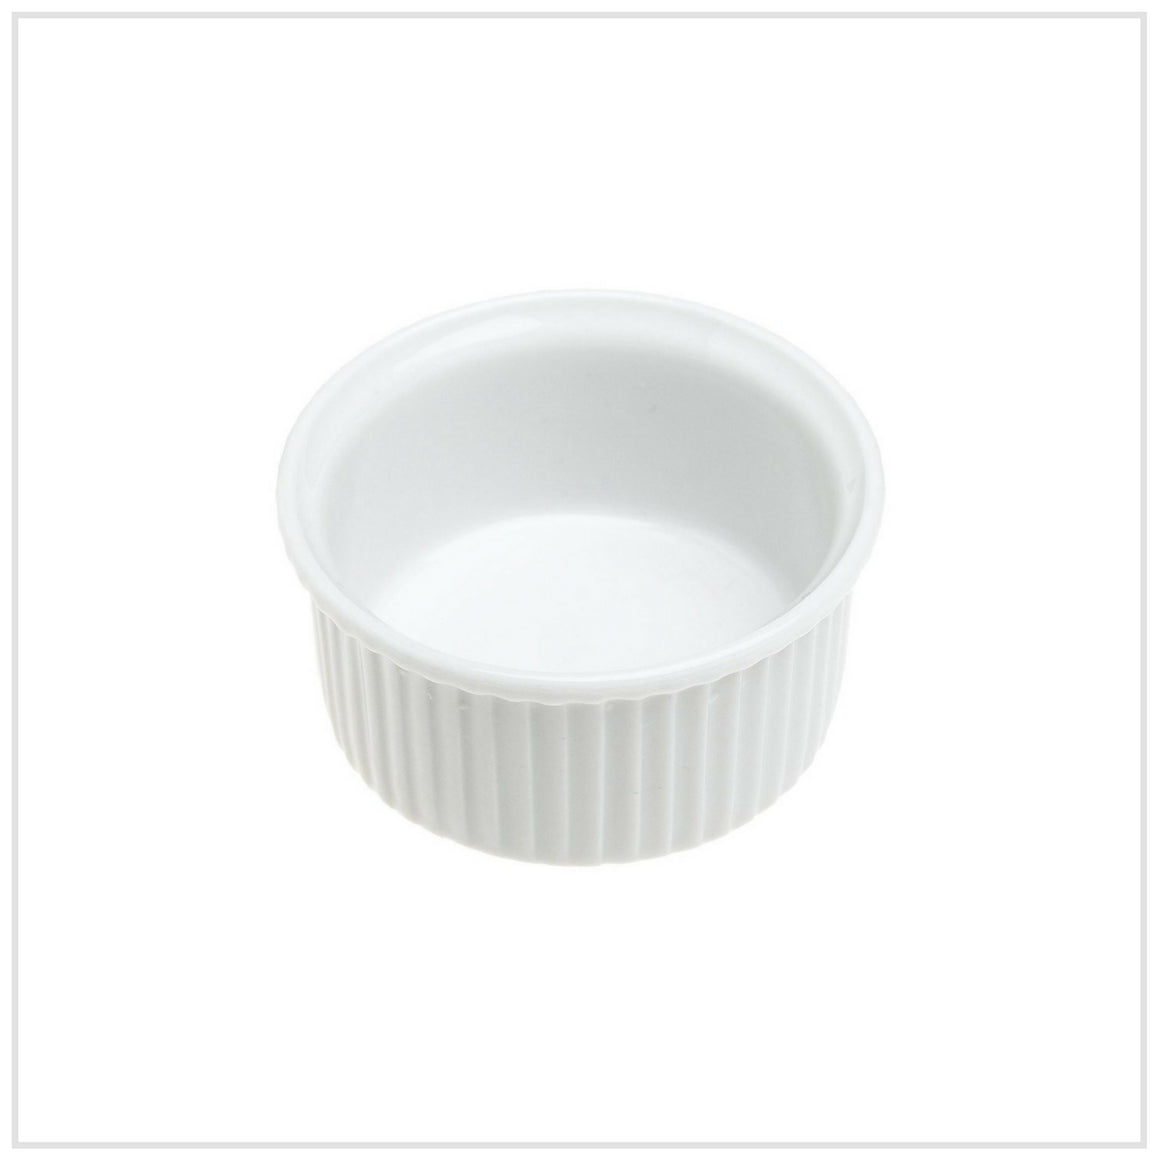 Pillivuyt Porcelain Mini Ramekin